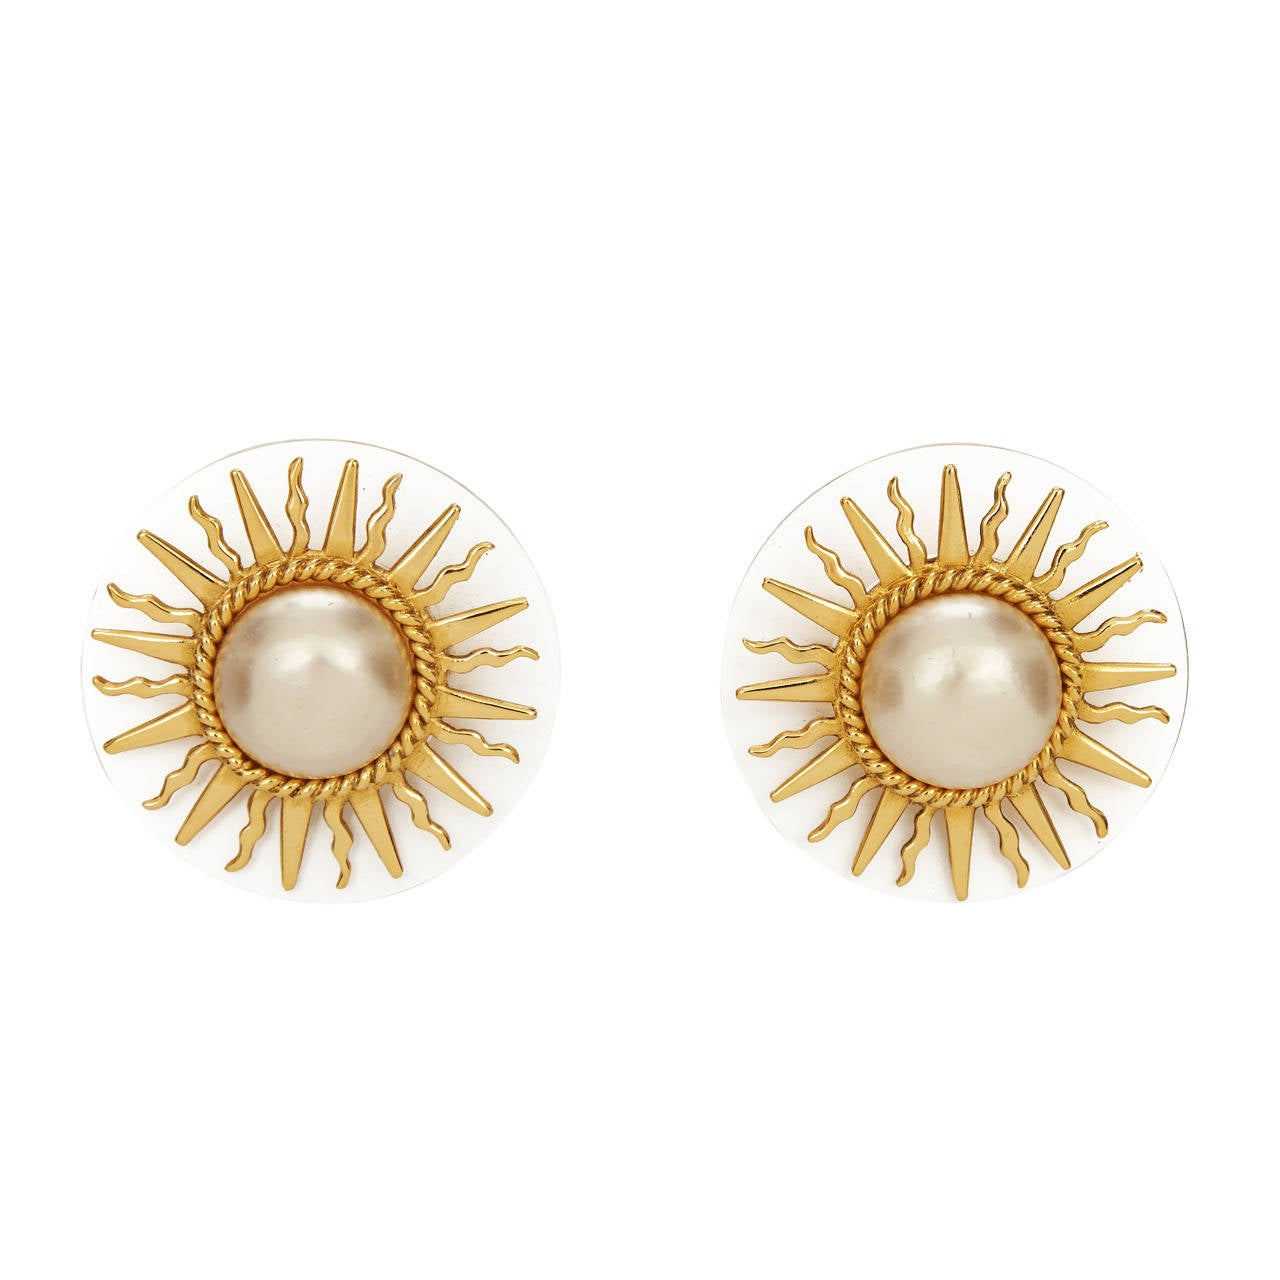 1980s Chanel Large Sun Earrings For Sale